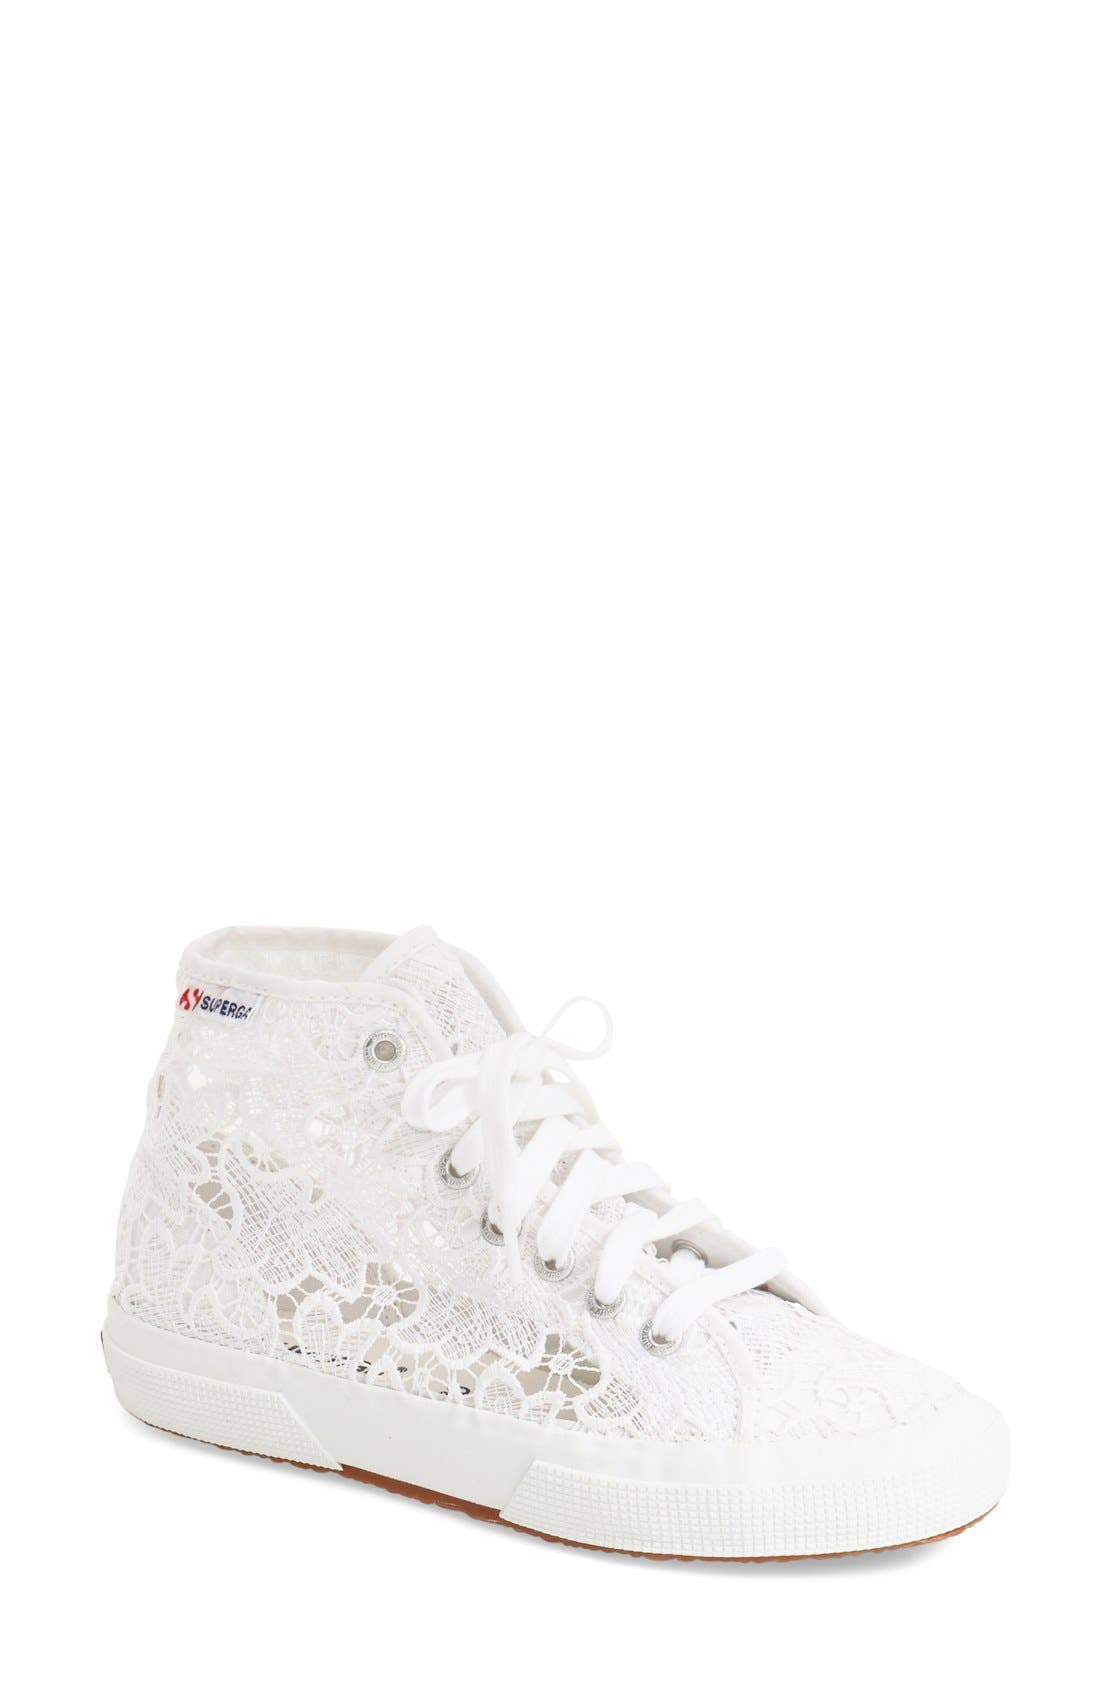 Main Image - Superga 'Macramew' High Top Sneaker (Women)